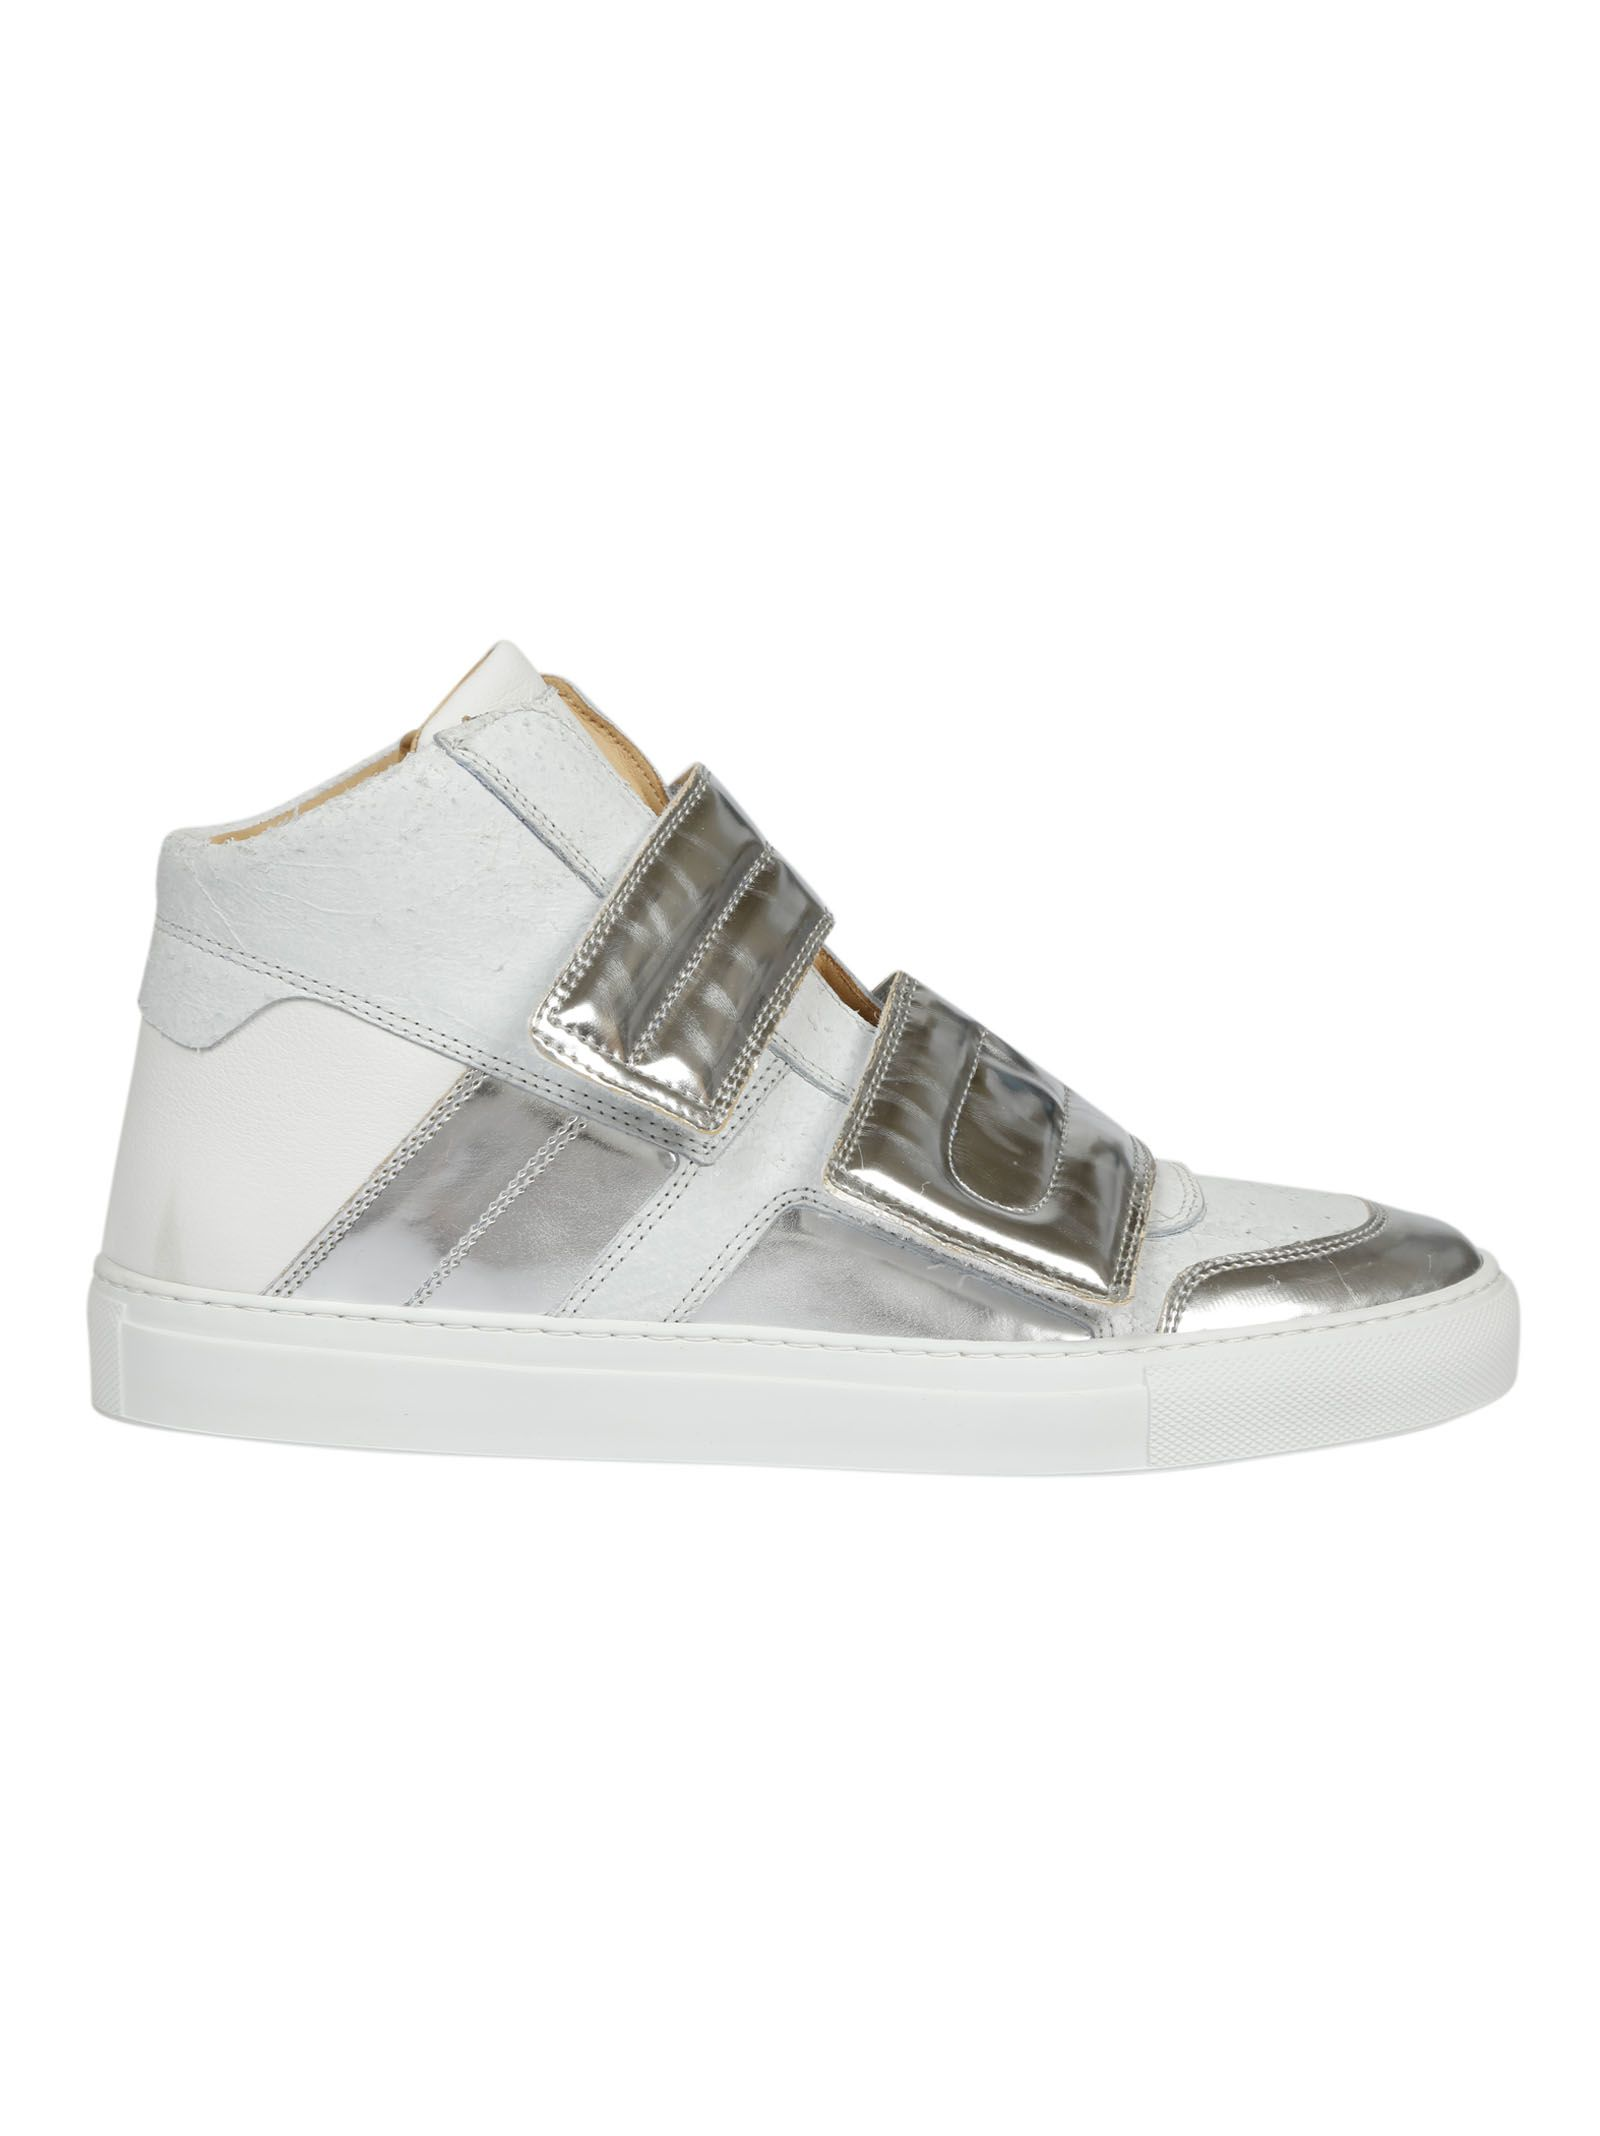 Mm6 Maison Margiela Panelled Hi-top Sneakers